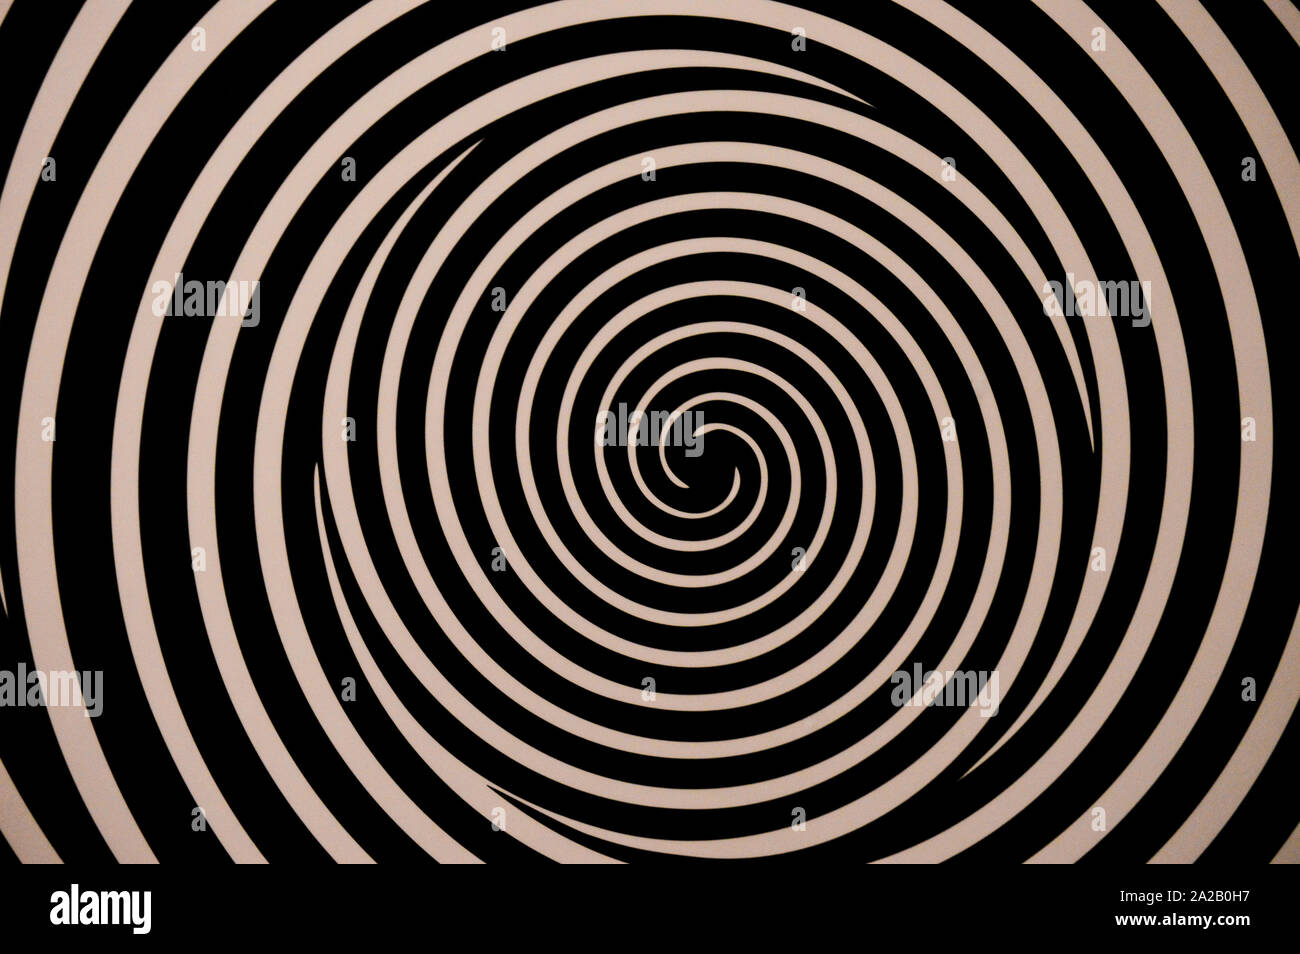 Optical illusion, black and white spinning spirals Stock Photo